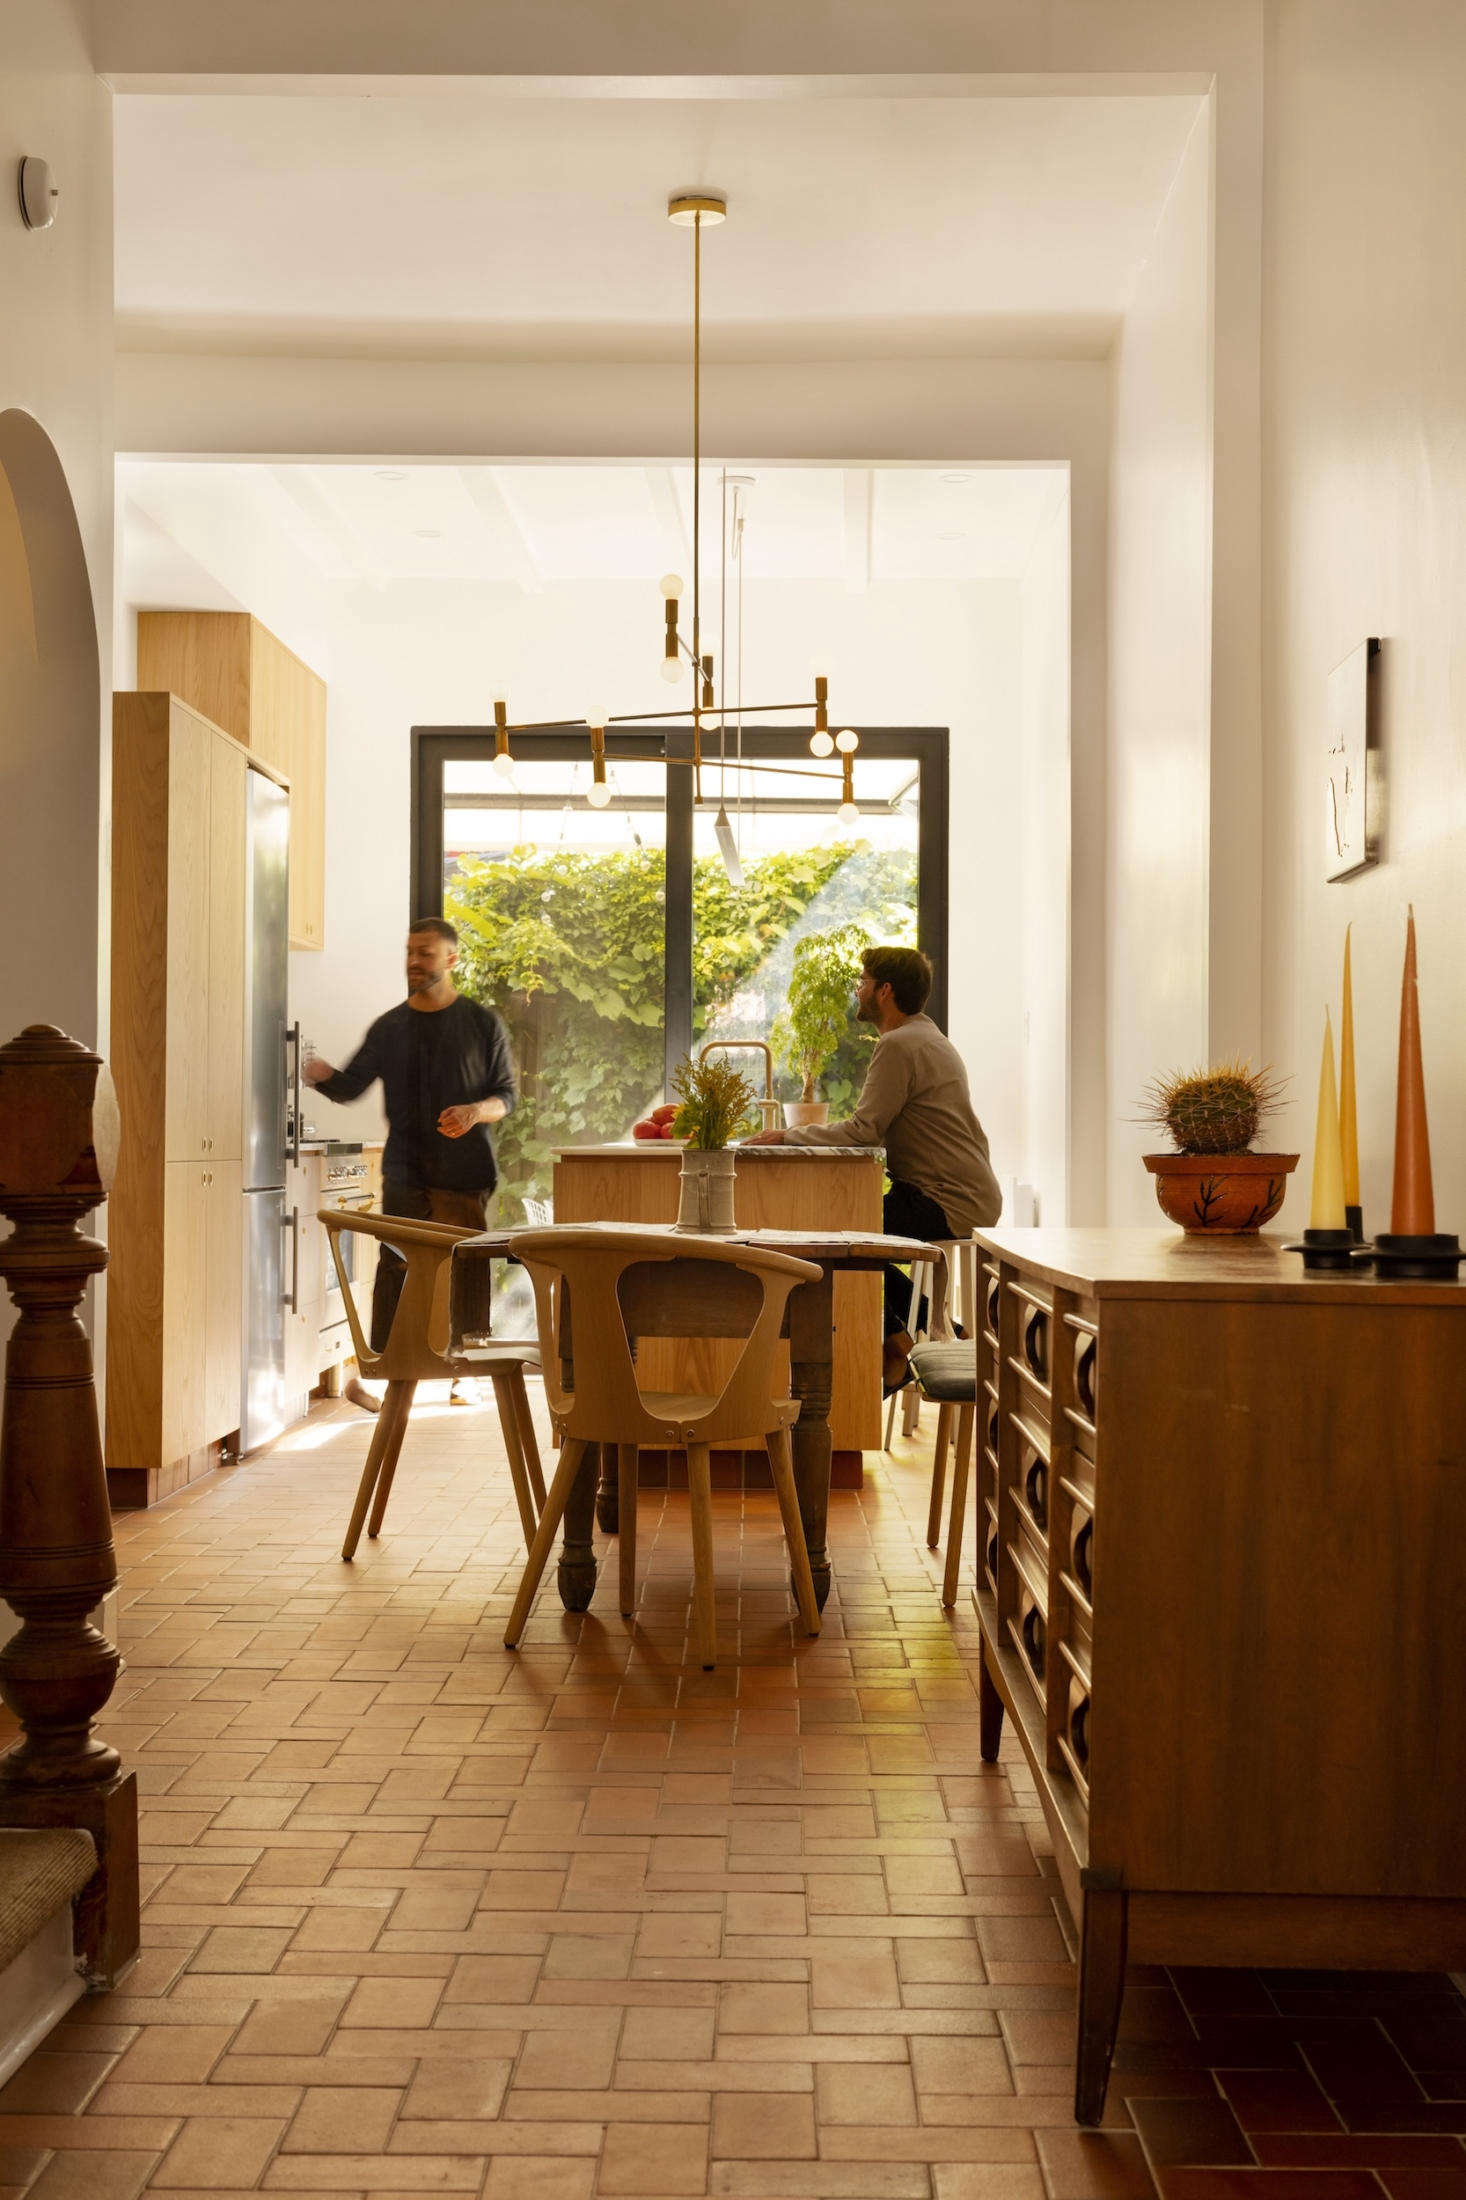 The kitchen, dining, and living rooms comprise the second floor. The terracotta tiled floors are new but replicate the original flooring in the kitchen.